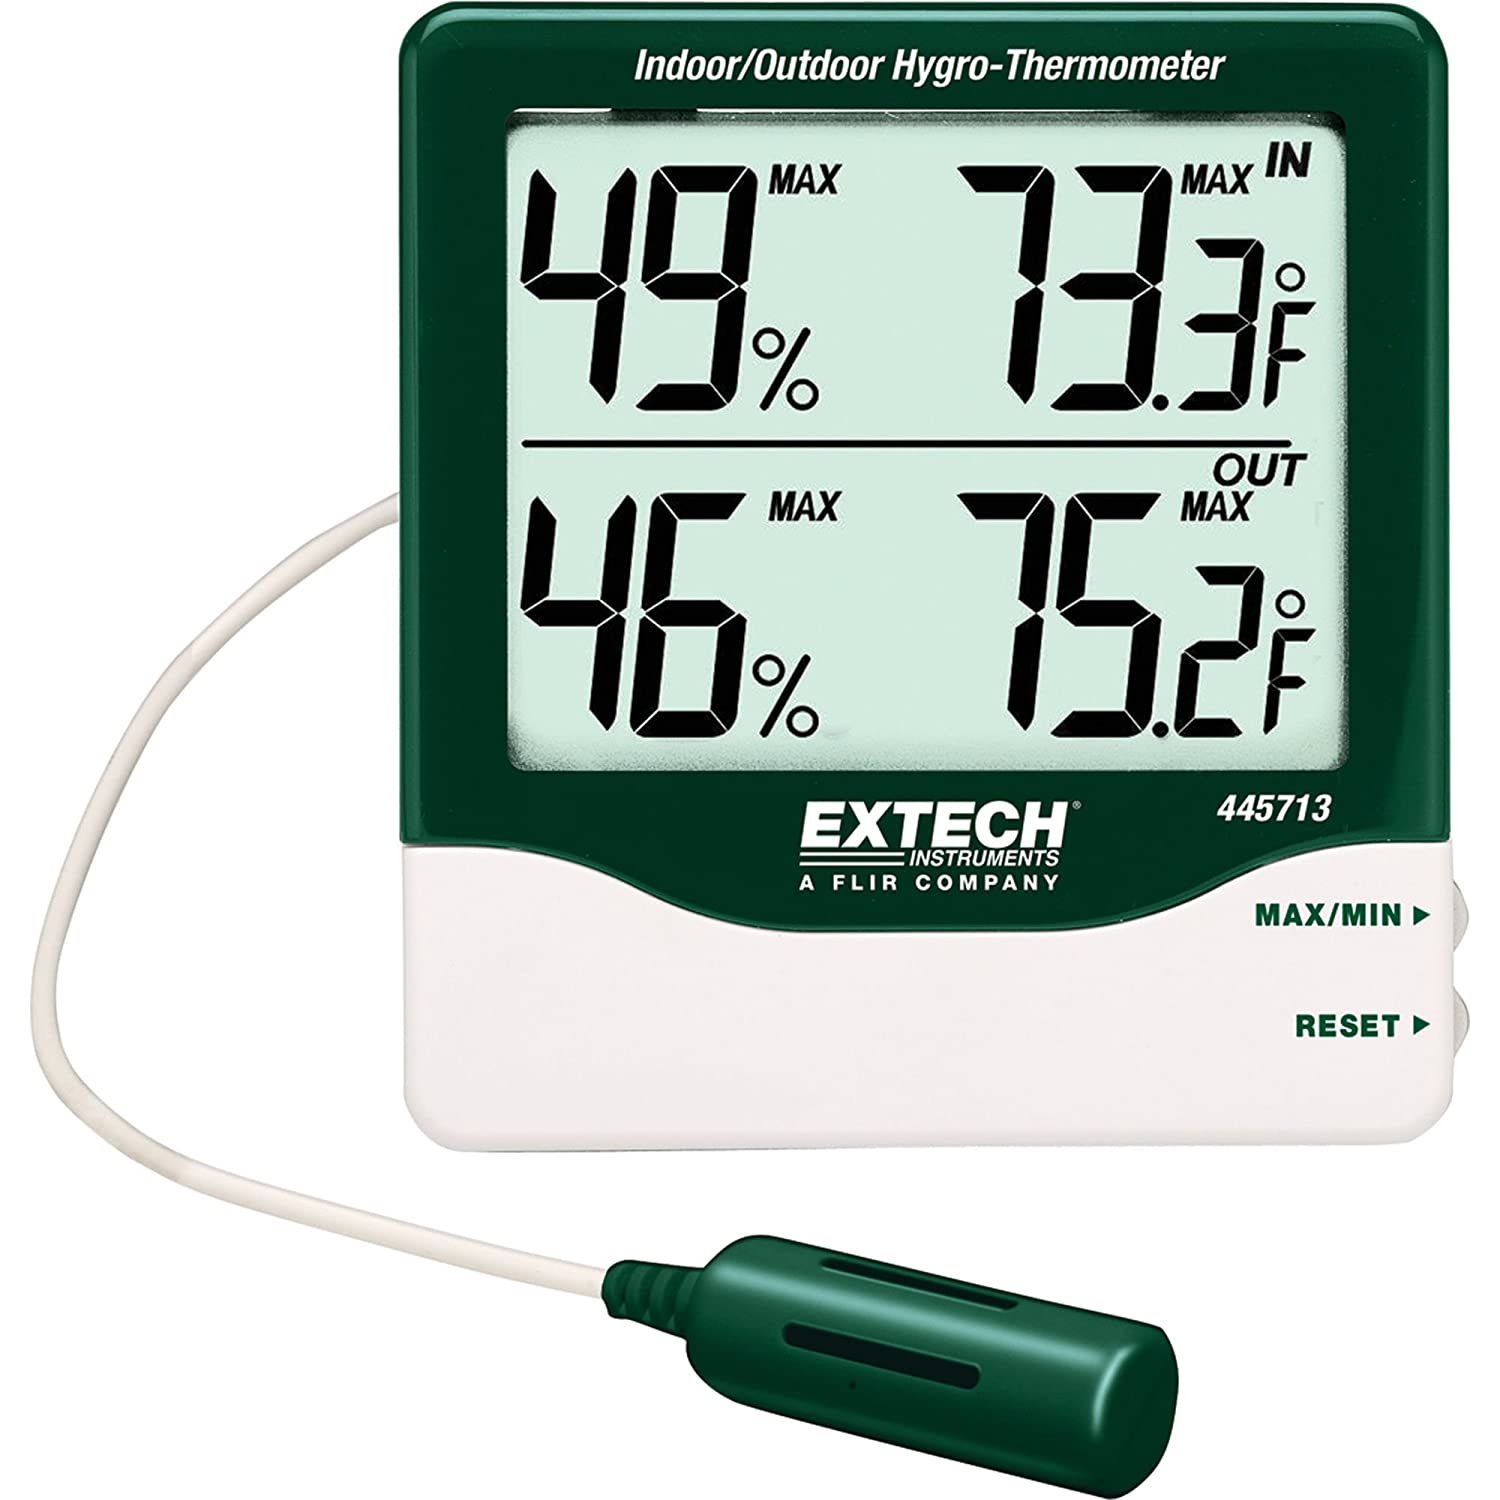 Extech 445713 Big Digit Indoor/Outdoor Hygro-Thermometer FLIR Commercial Systems Inc.